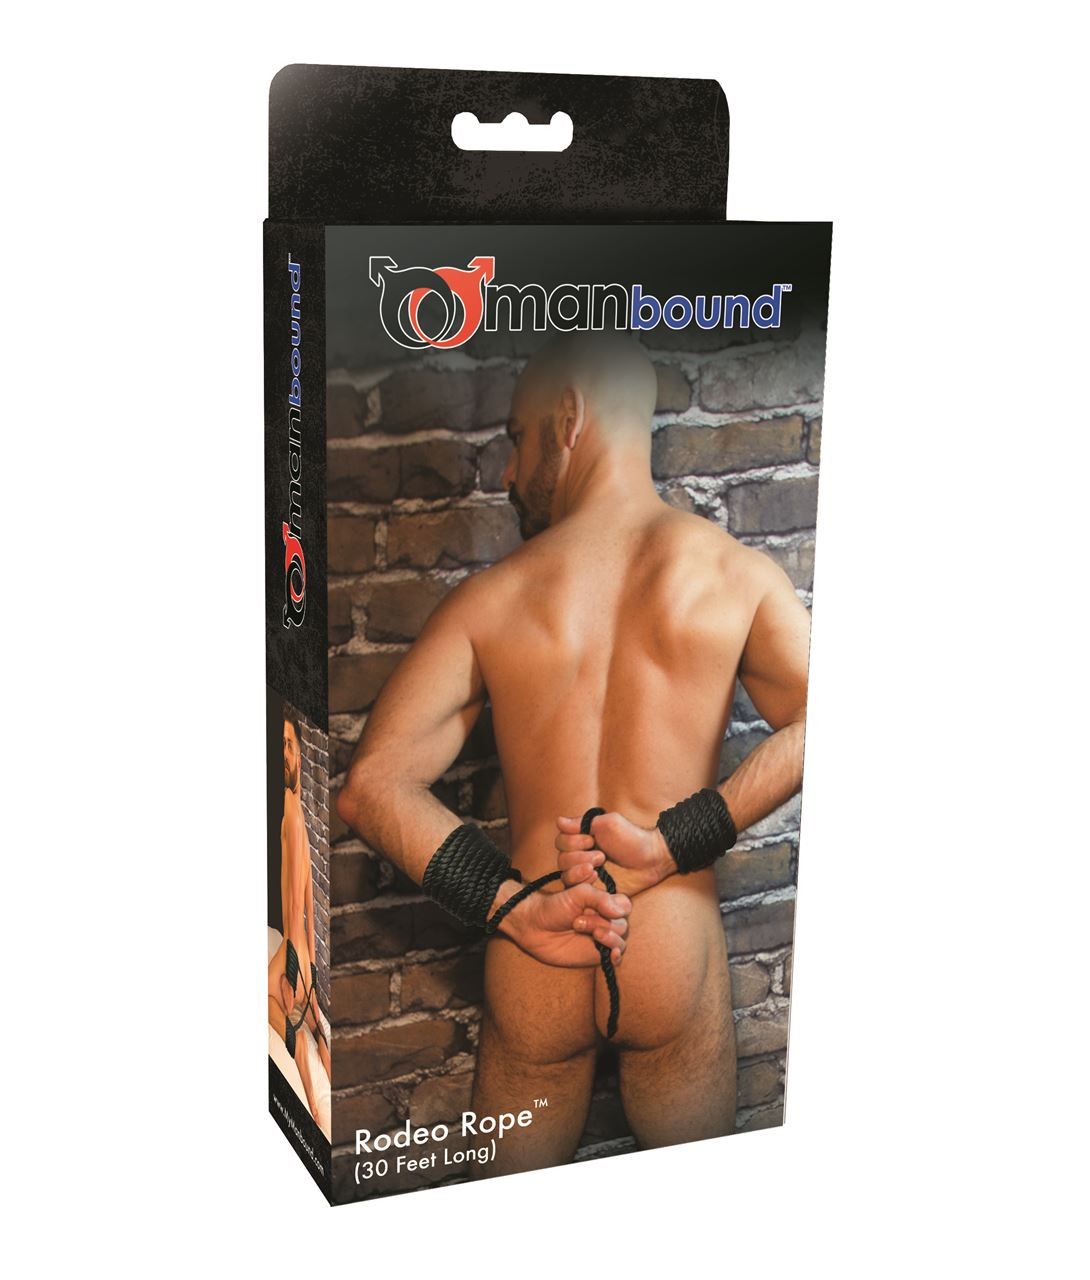 Manbound Rodeo Rope